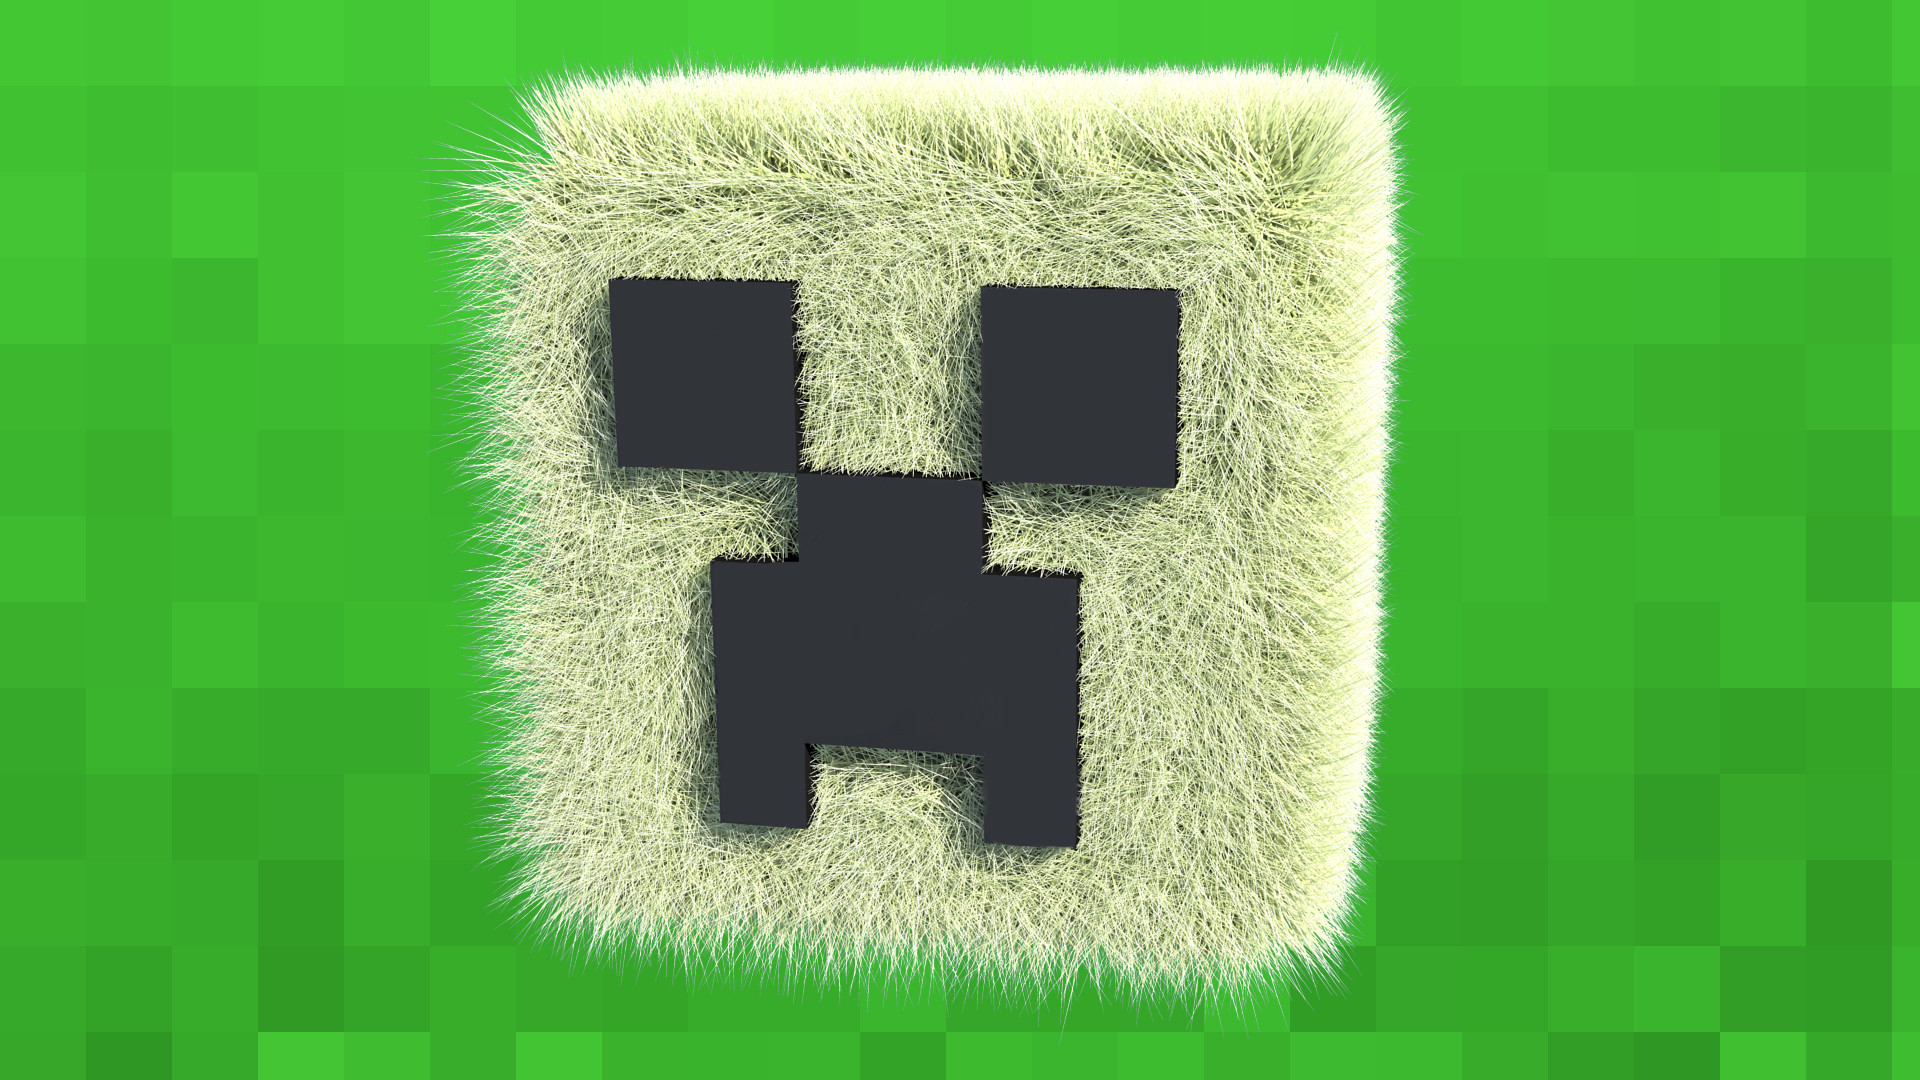 how to download minecraft for free on computer